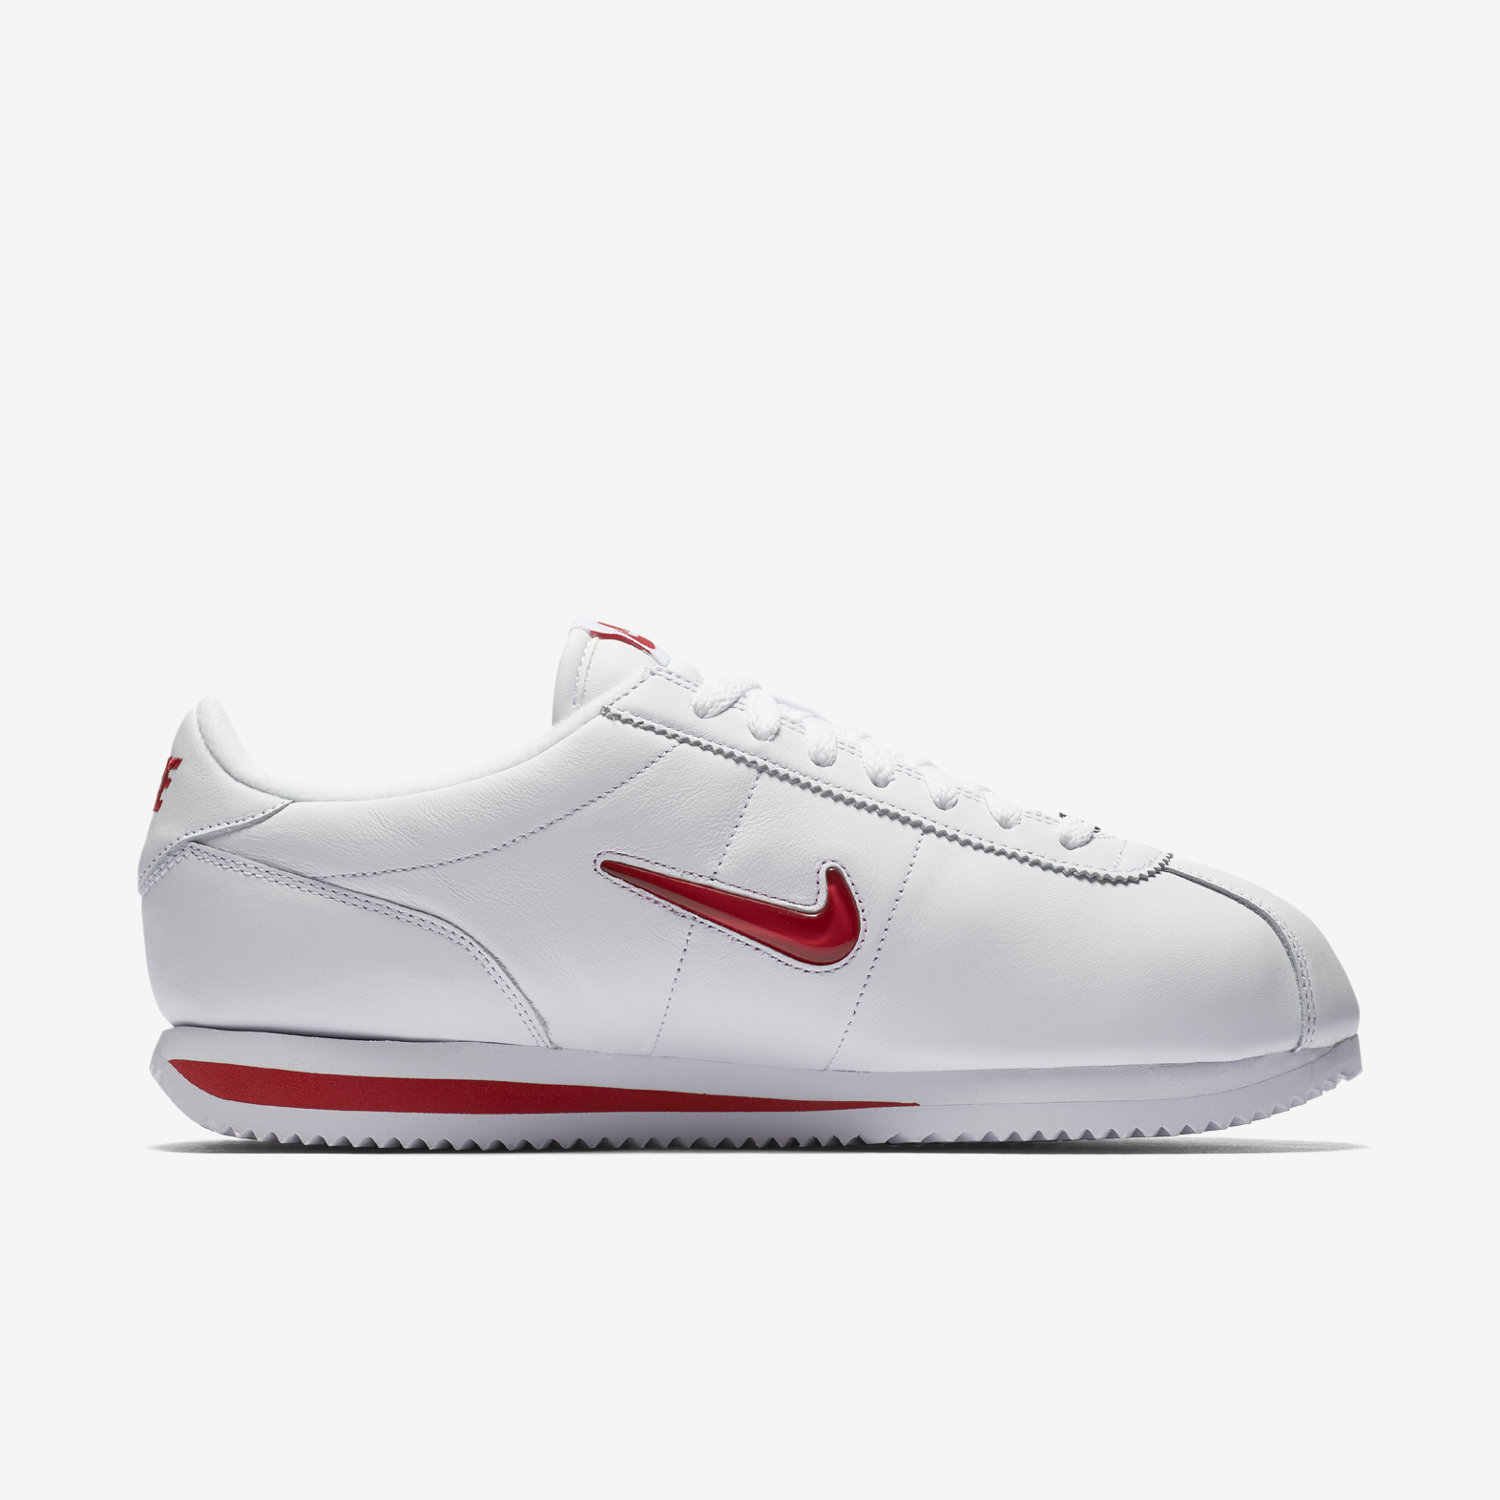 White Nike Cortez Shoes